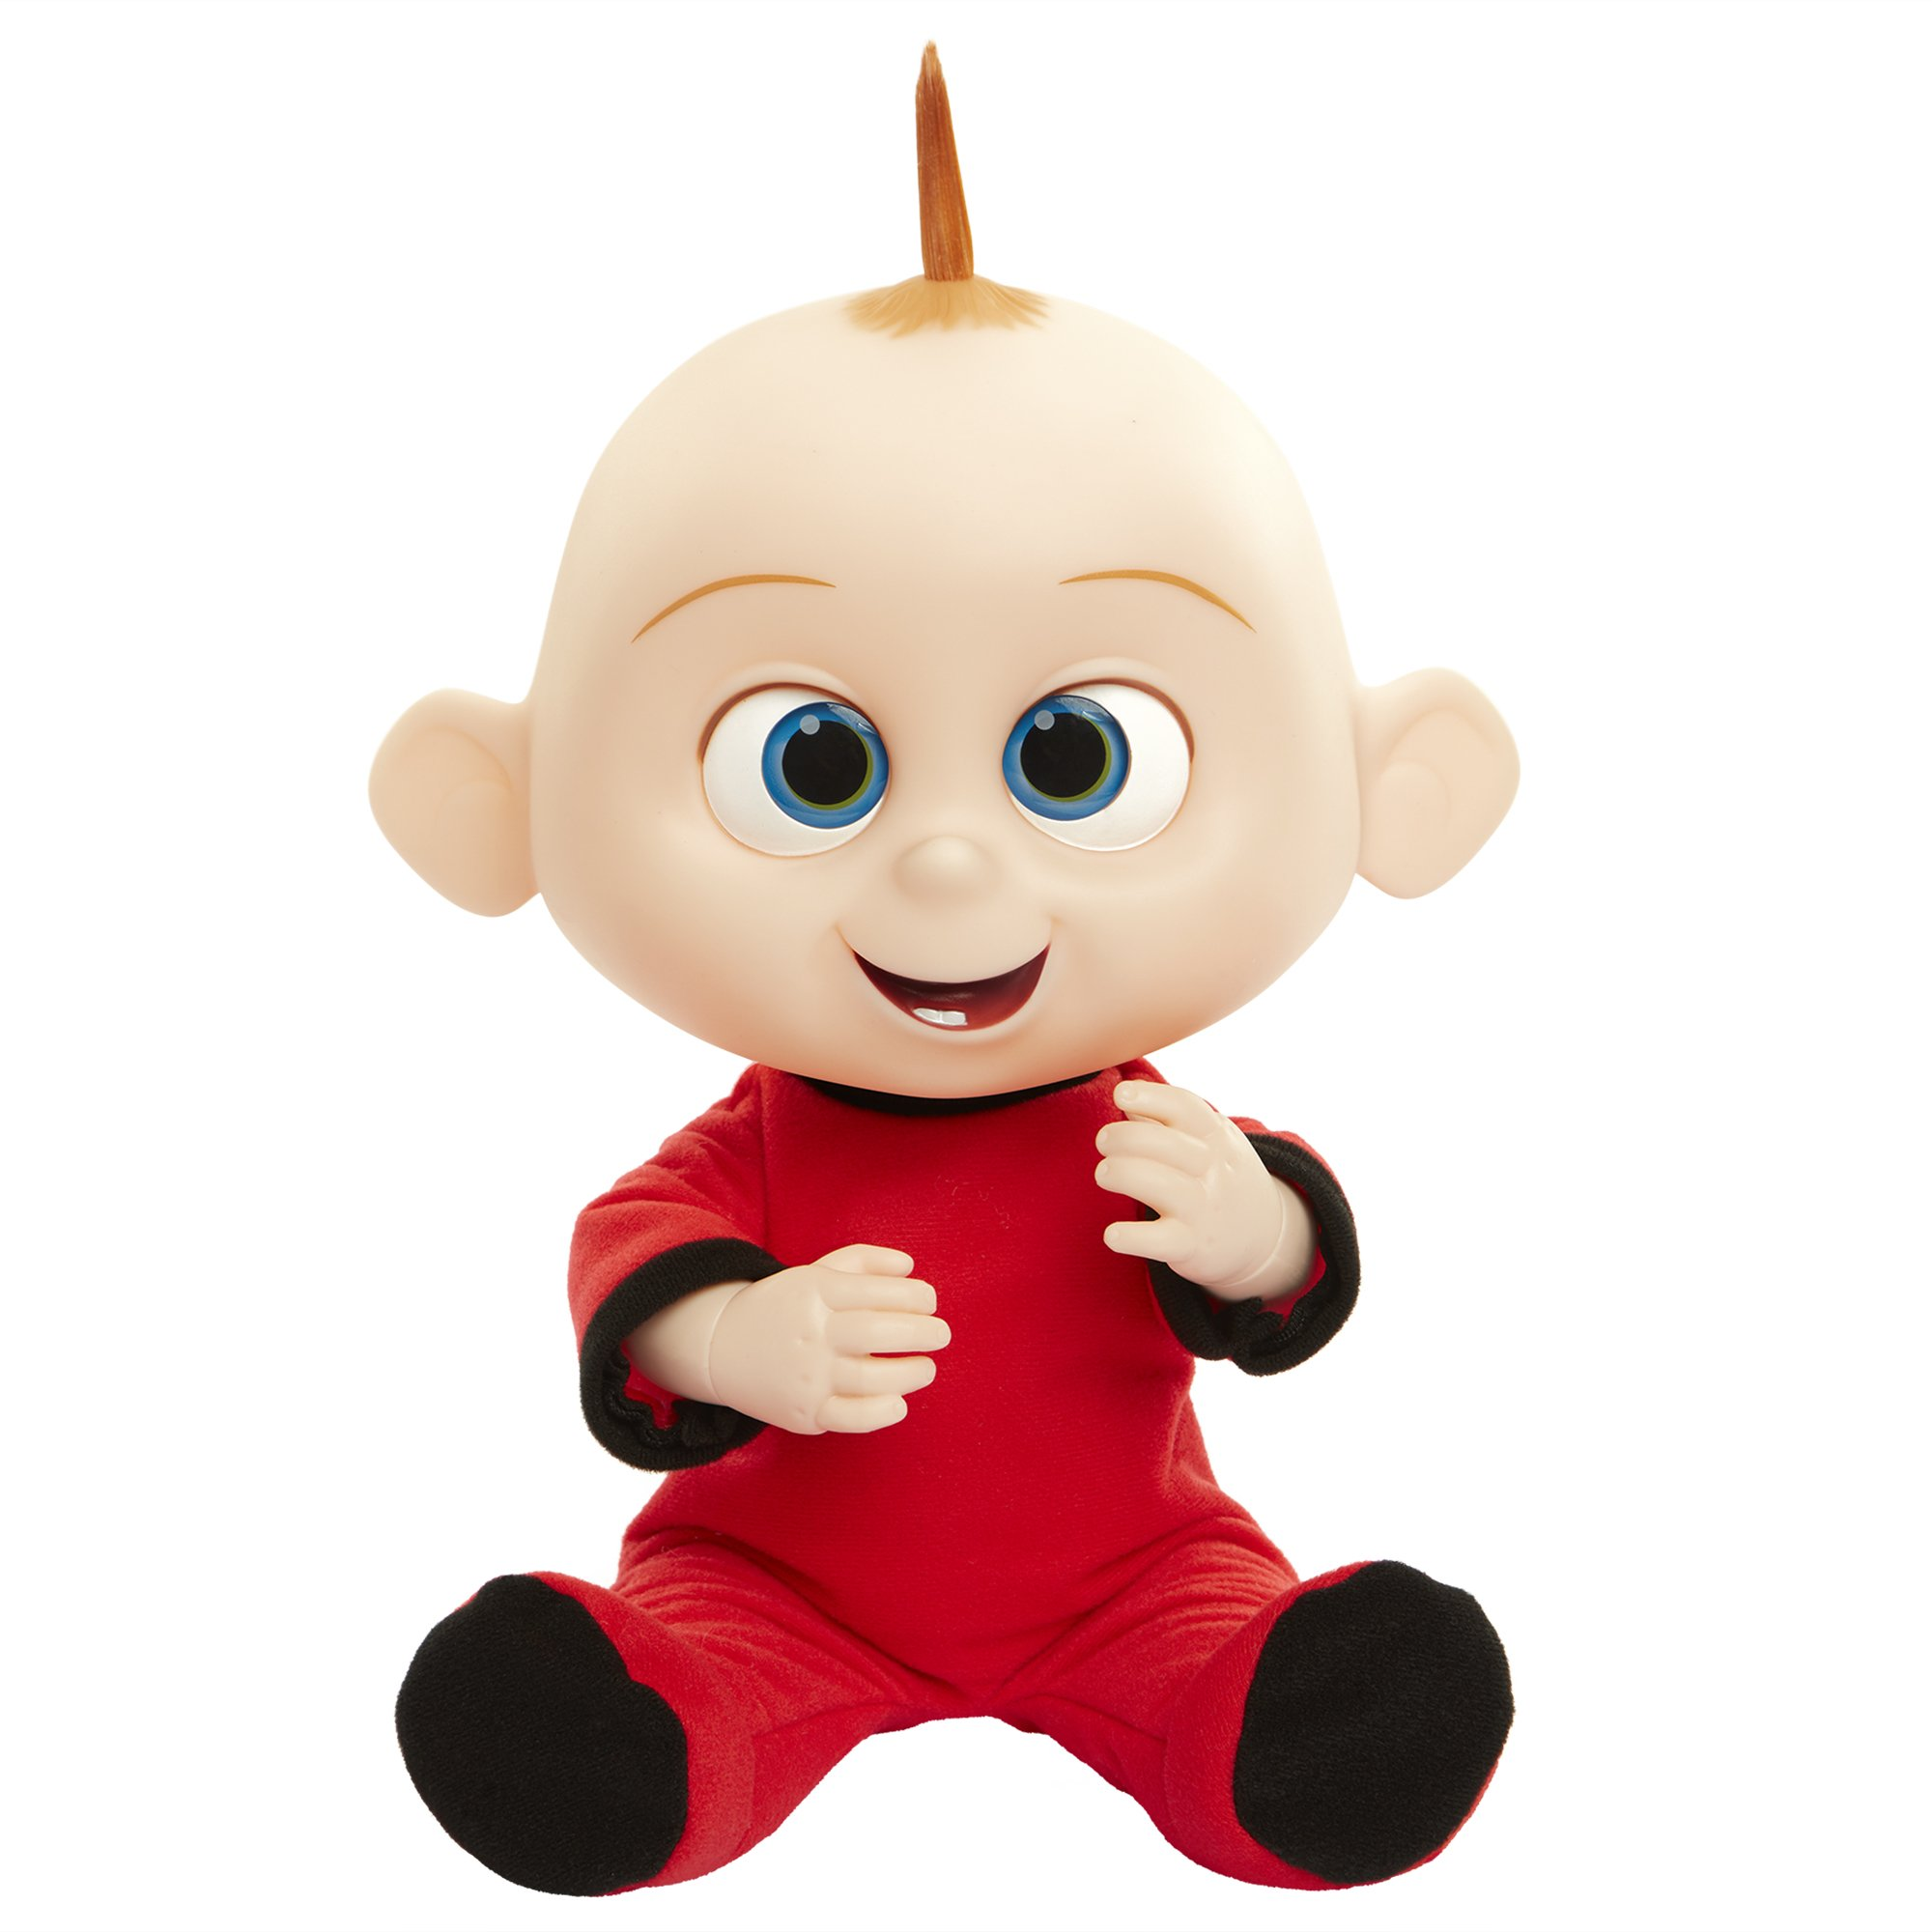 The Incredibles 2 Jack-Jack Plush-Figure Features Lights & Sounds and comes with Raccoon Toy by The Incredibles 2 (Image #2)